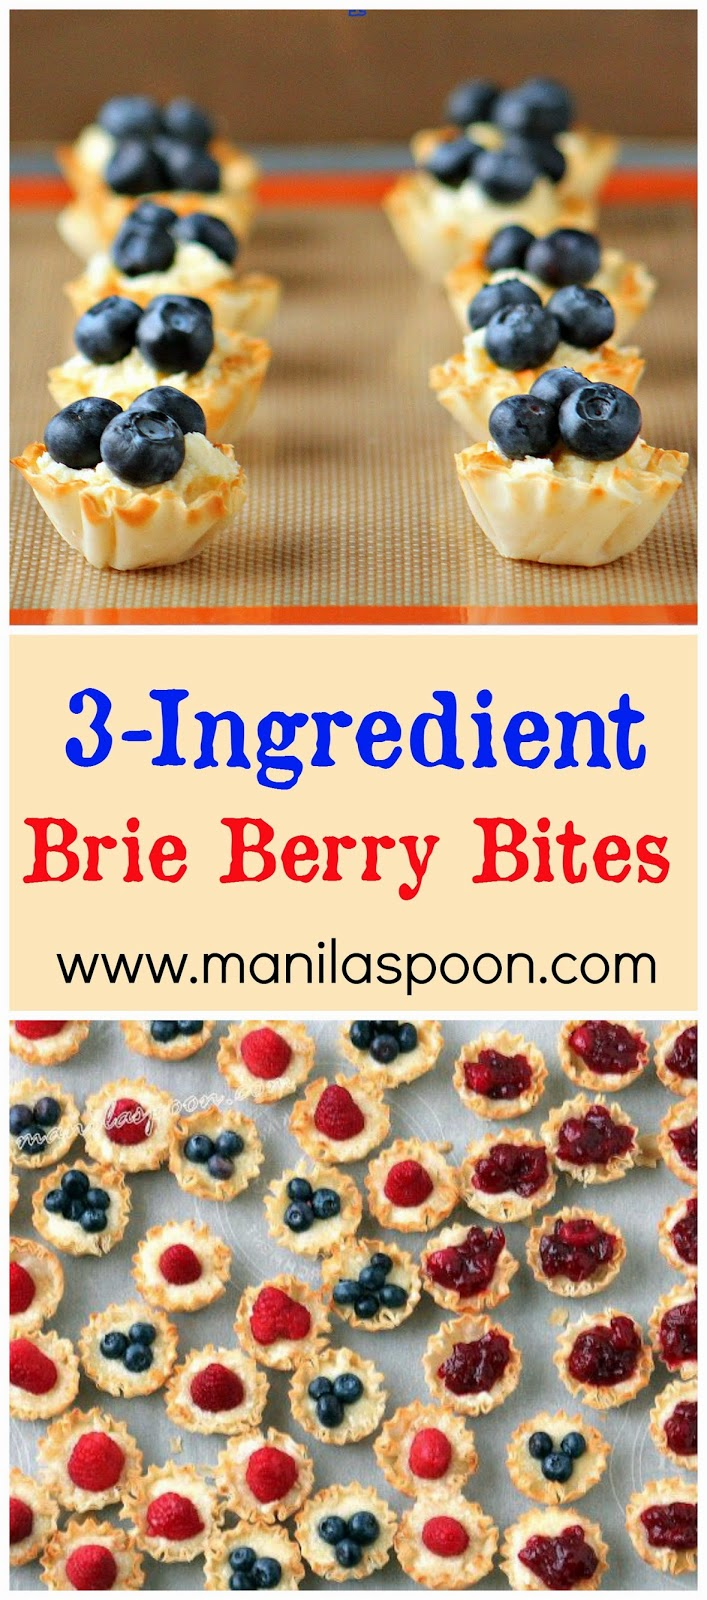 Only 3-ingredients to make these delectable nibbles! Great on any holiday table. #brie #berries #appetizers